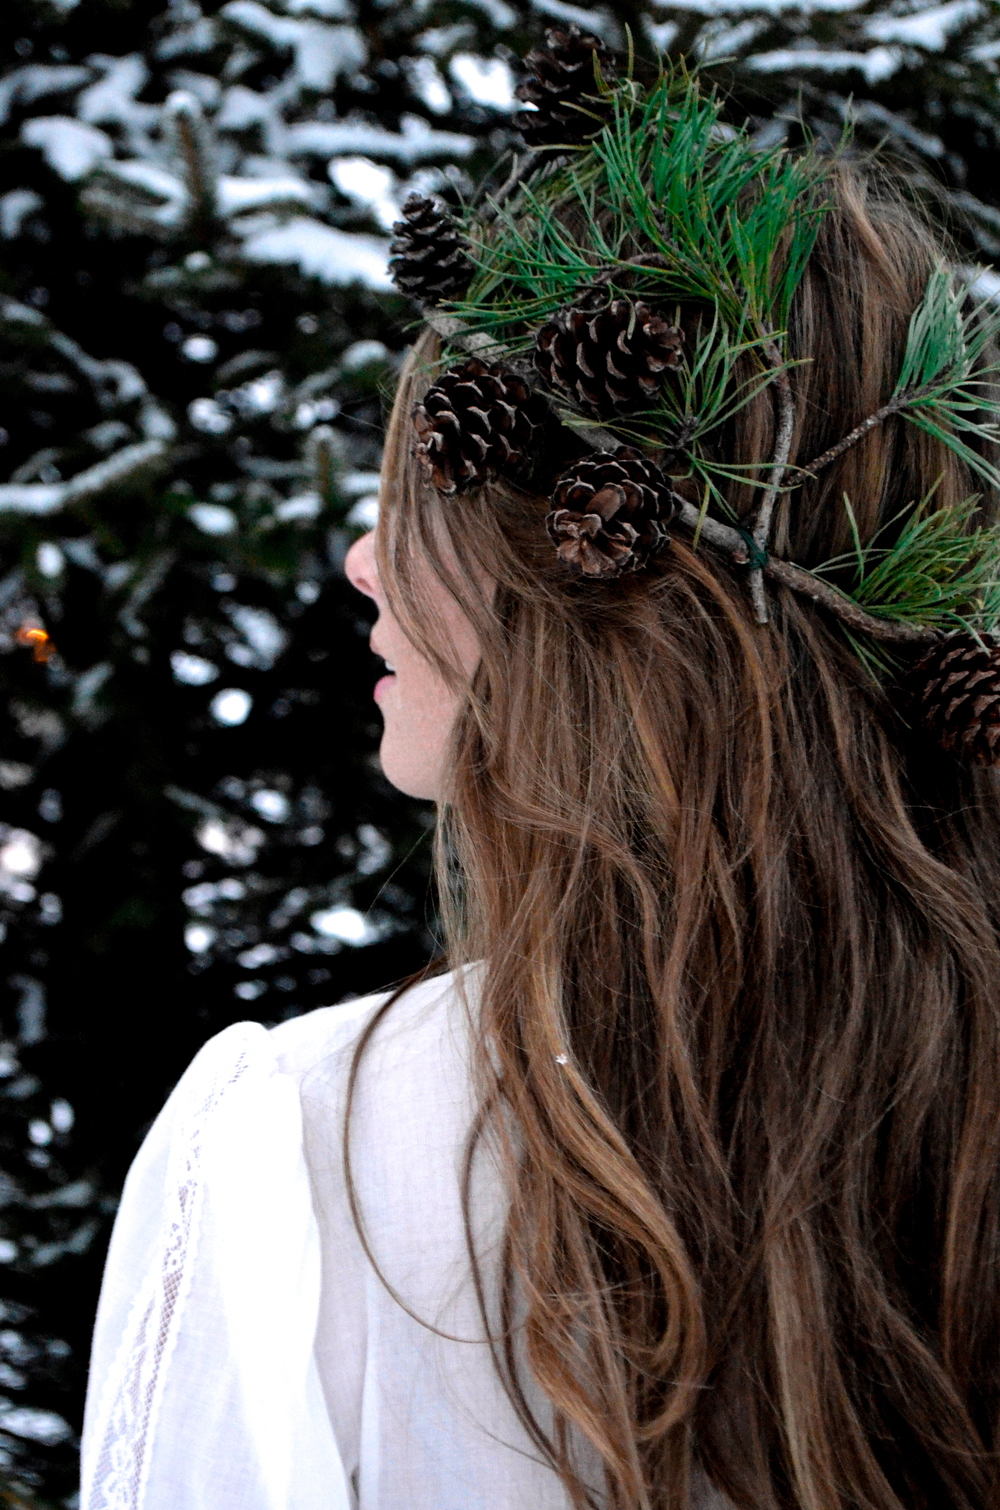 The Lion the Witch and the Wardrobe Inspired Styled Winter Photography Shoot (14 of 20).jpg